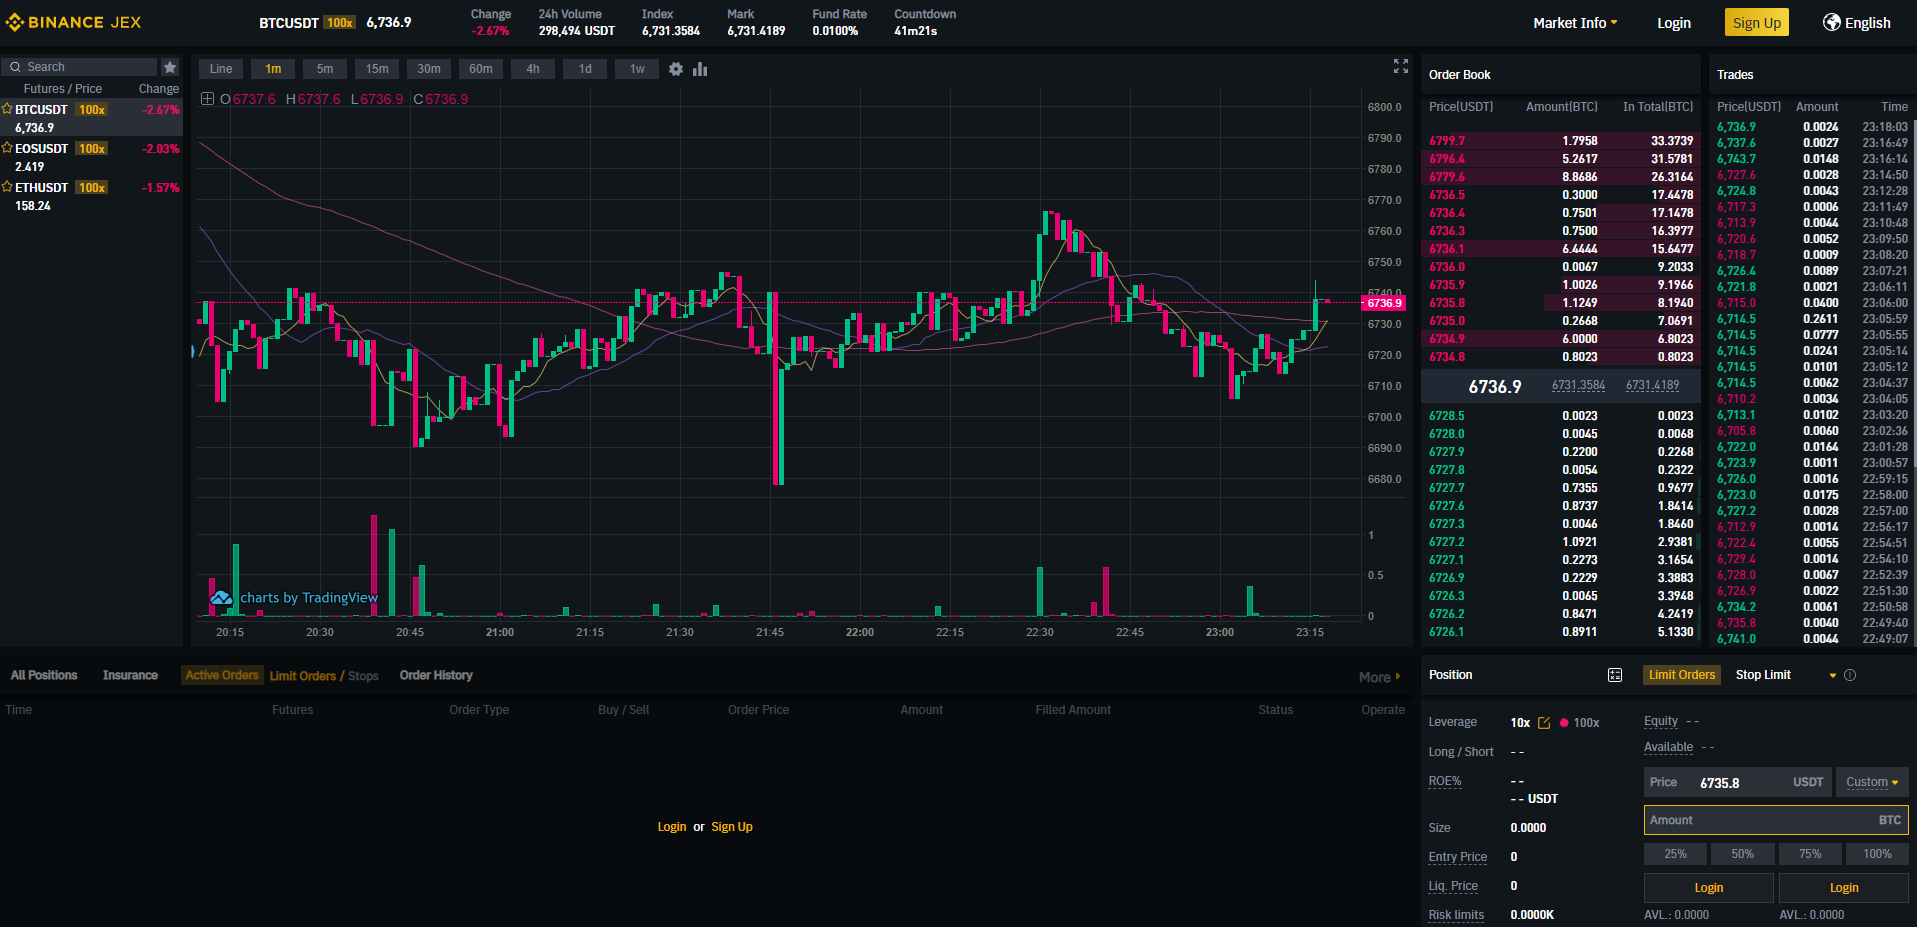 Binance JEX Trading View Professional